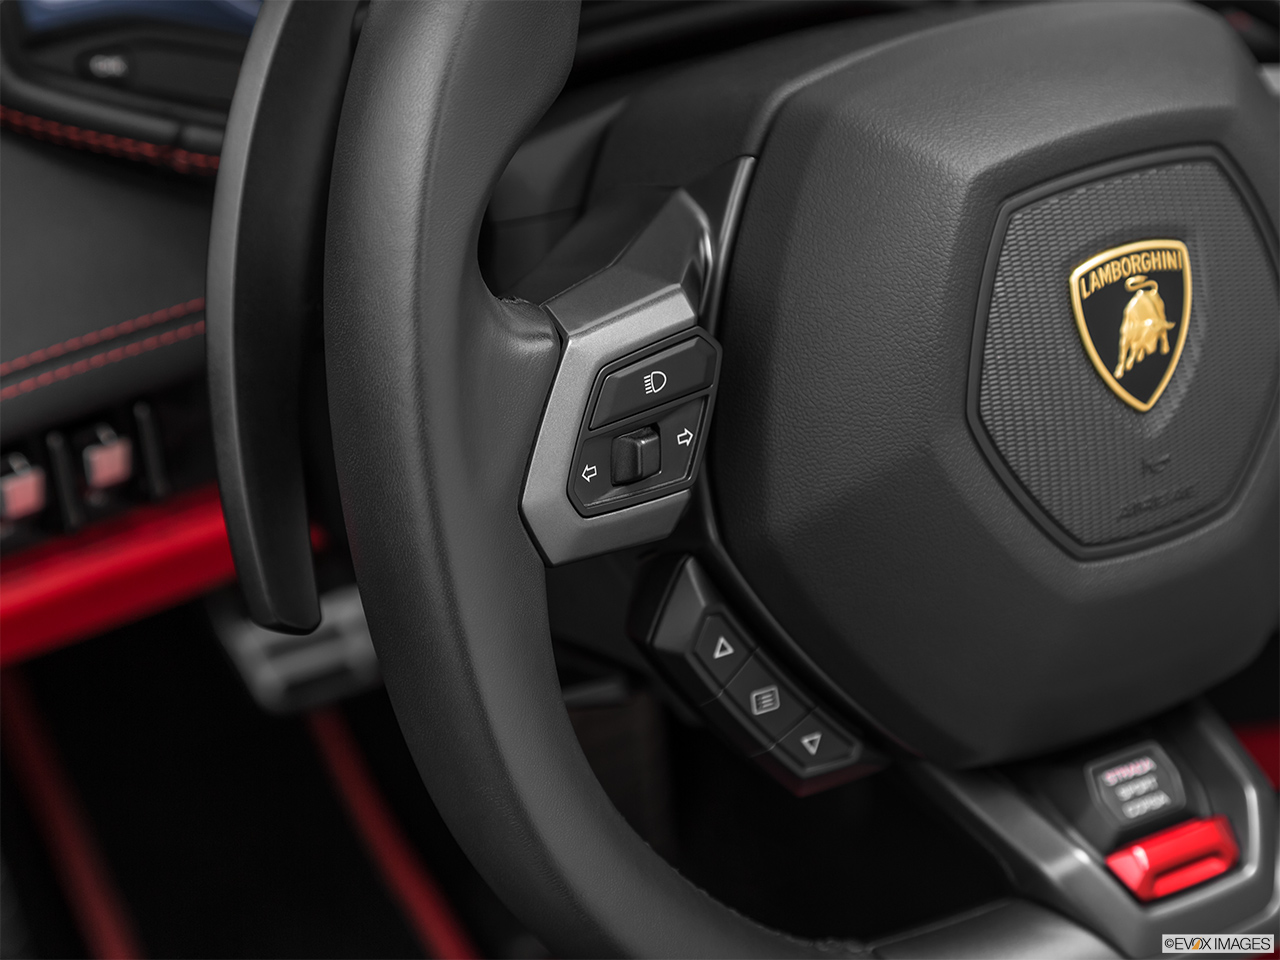 2019 Lamborghini Huracan Spyder LP580-2S Steering Wheel Controls (Left Side)